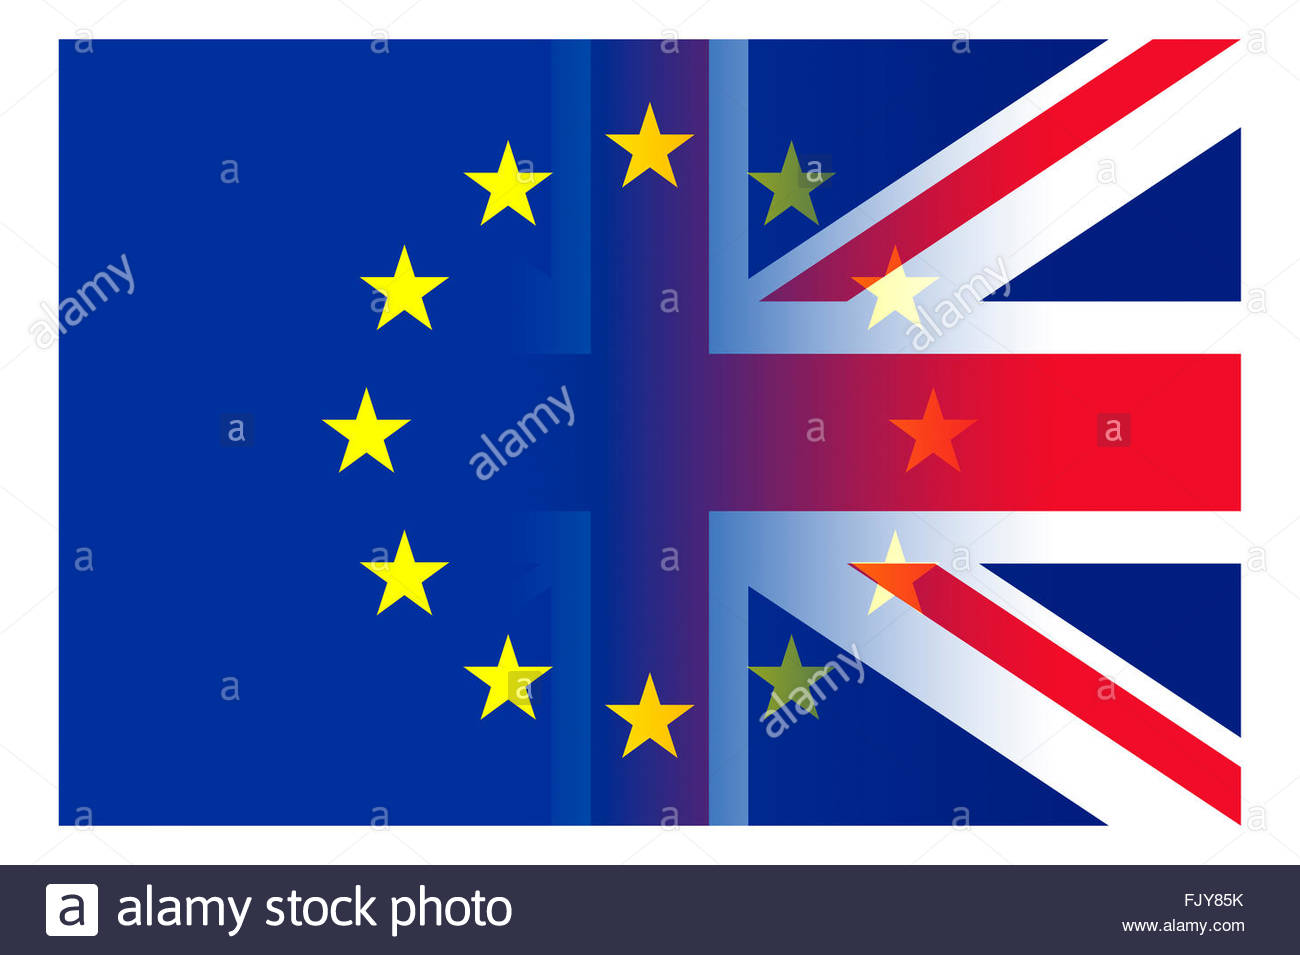 UK and EU flags merged to represent the the union. - Stock Image